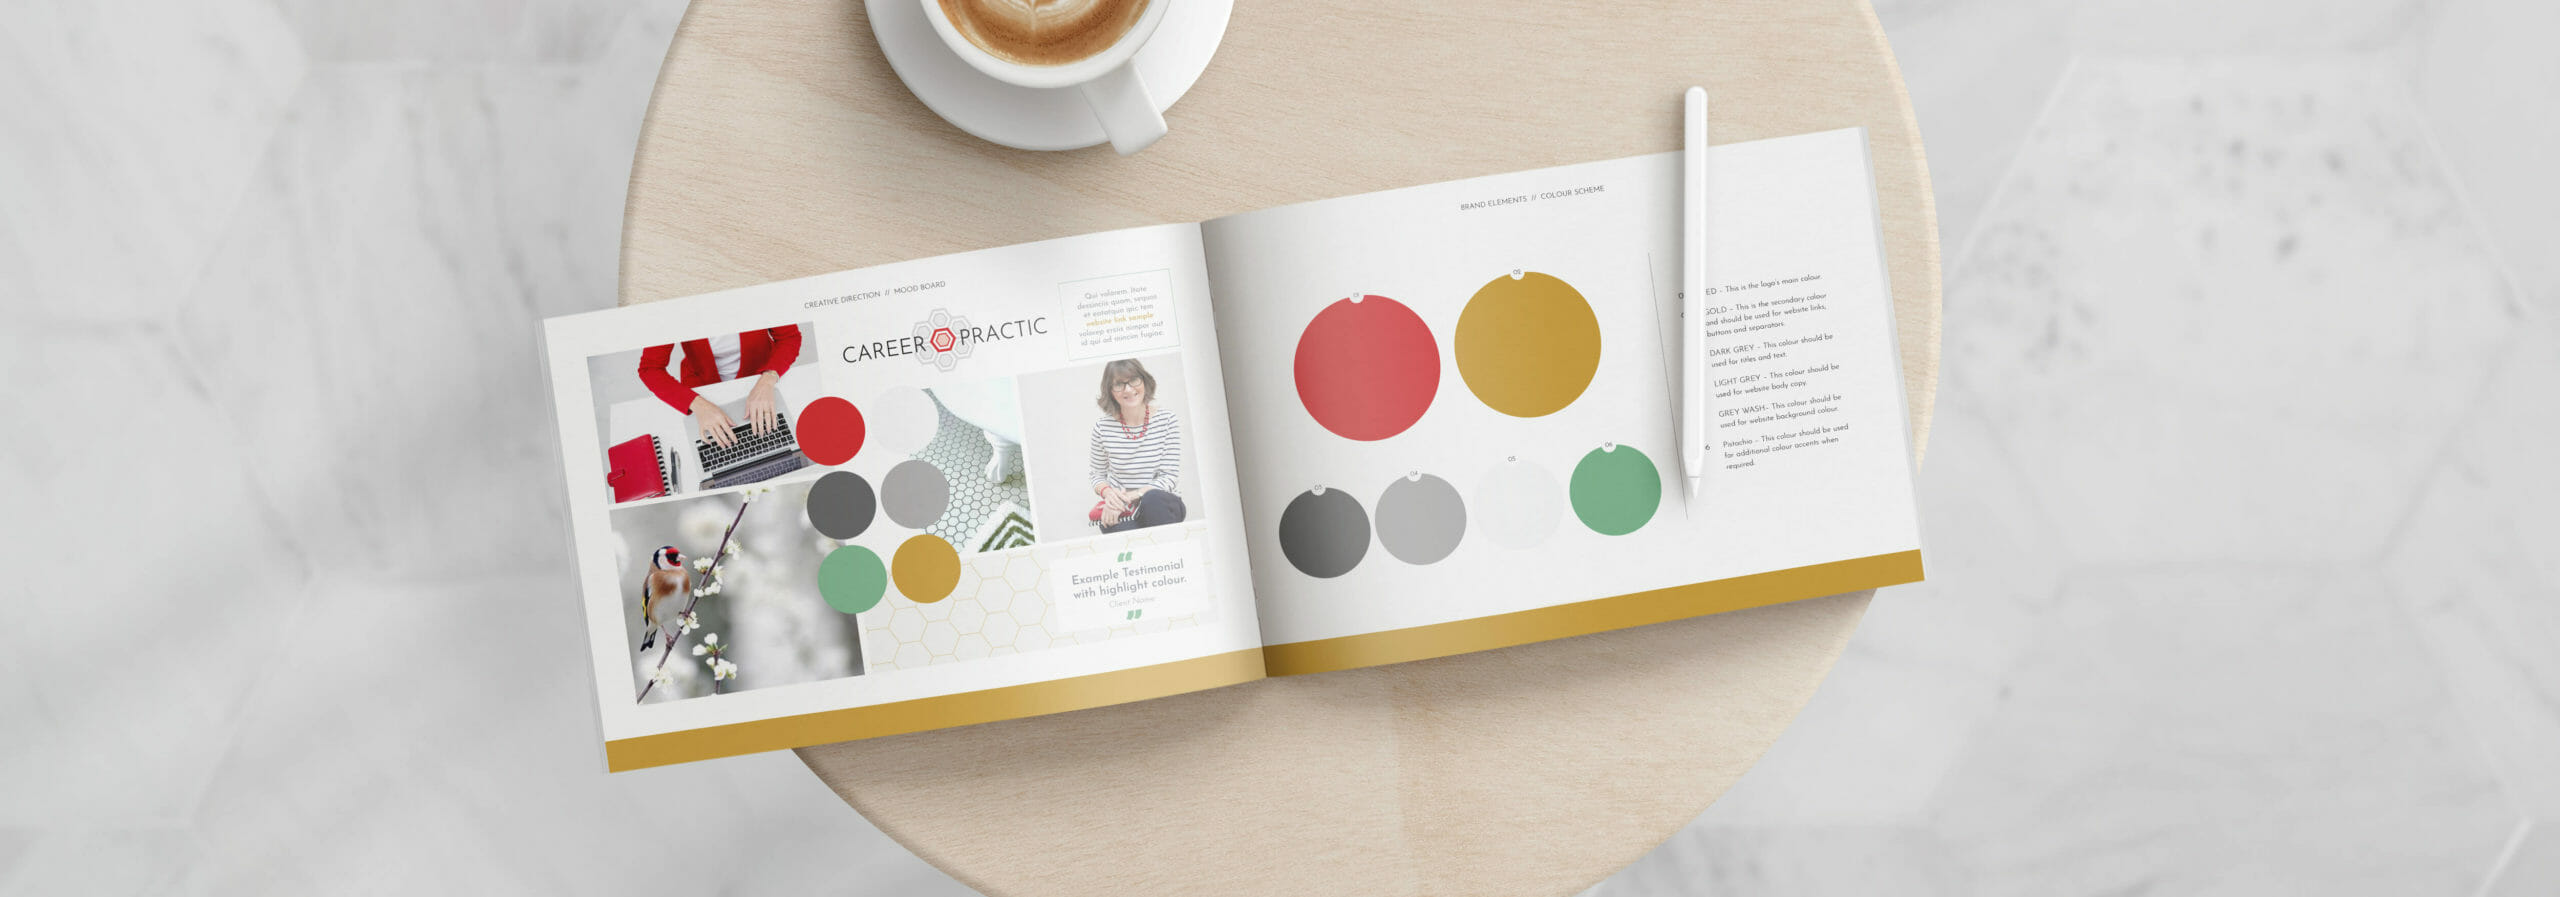 Career Practic brand identity and colour pallet